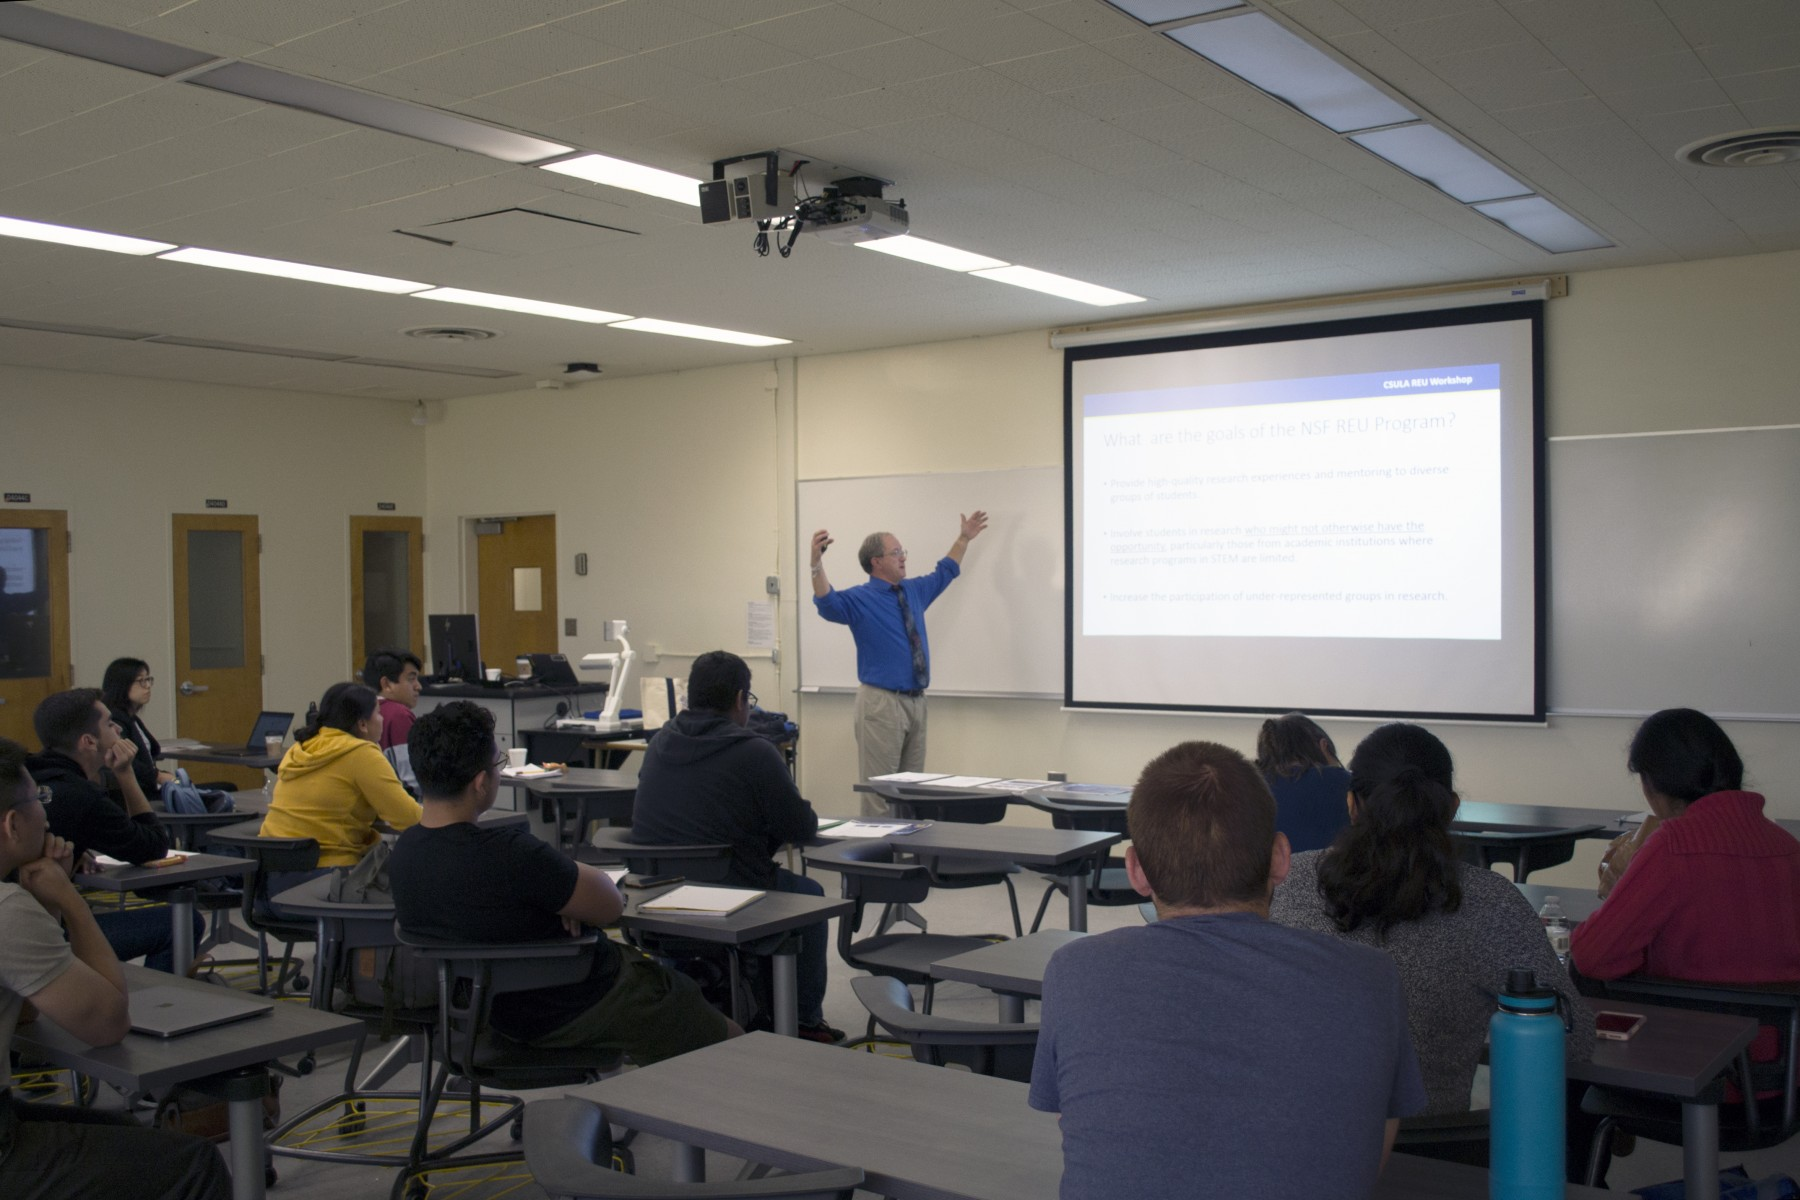 Dr. Frank Marsik from the University of Michigan leading a research experiences for undergraduates (REU) application workshop